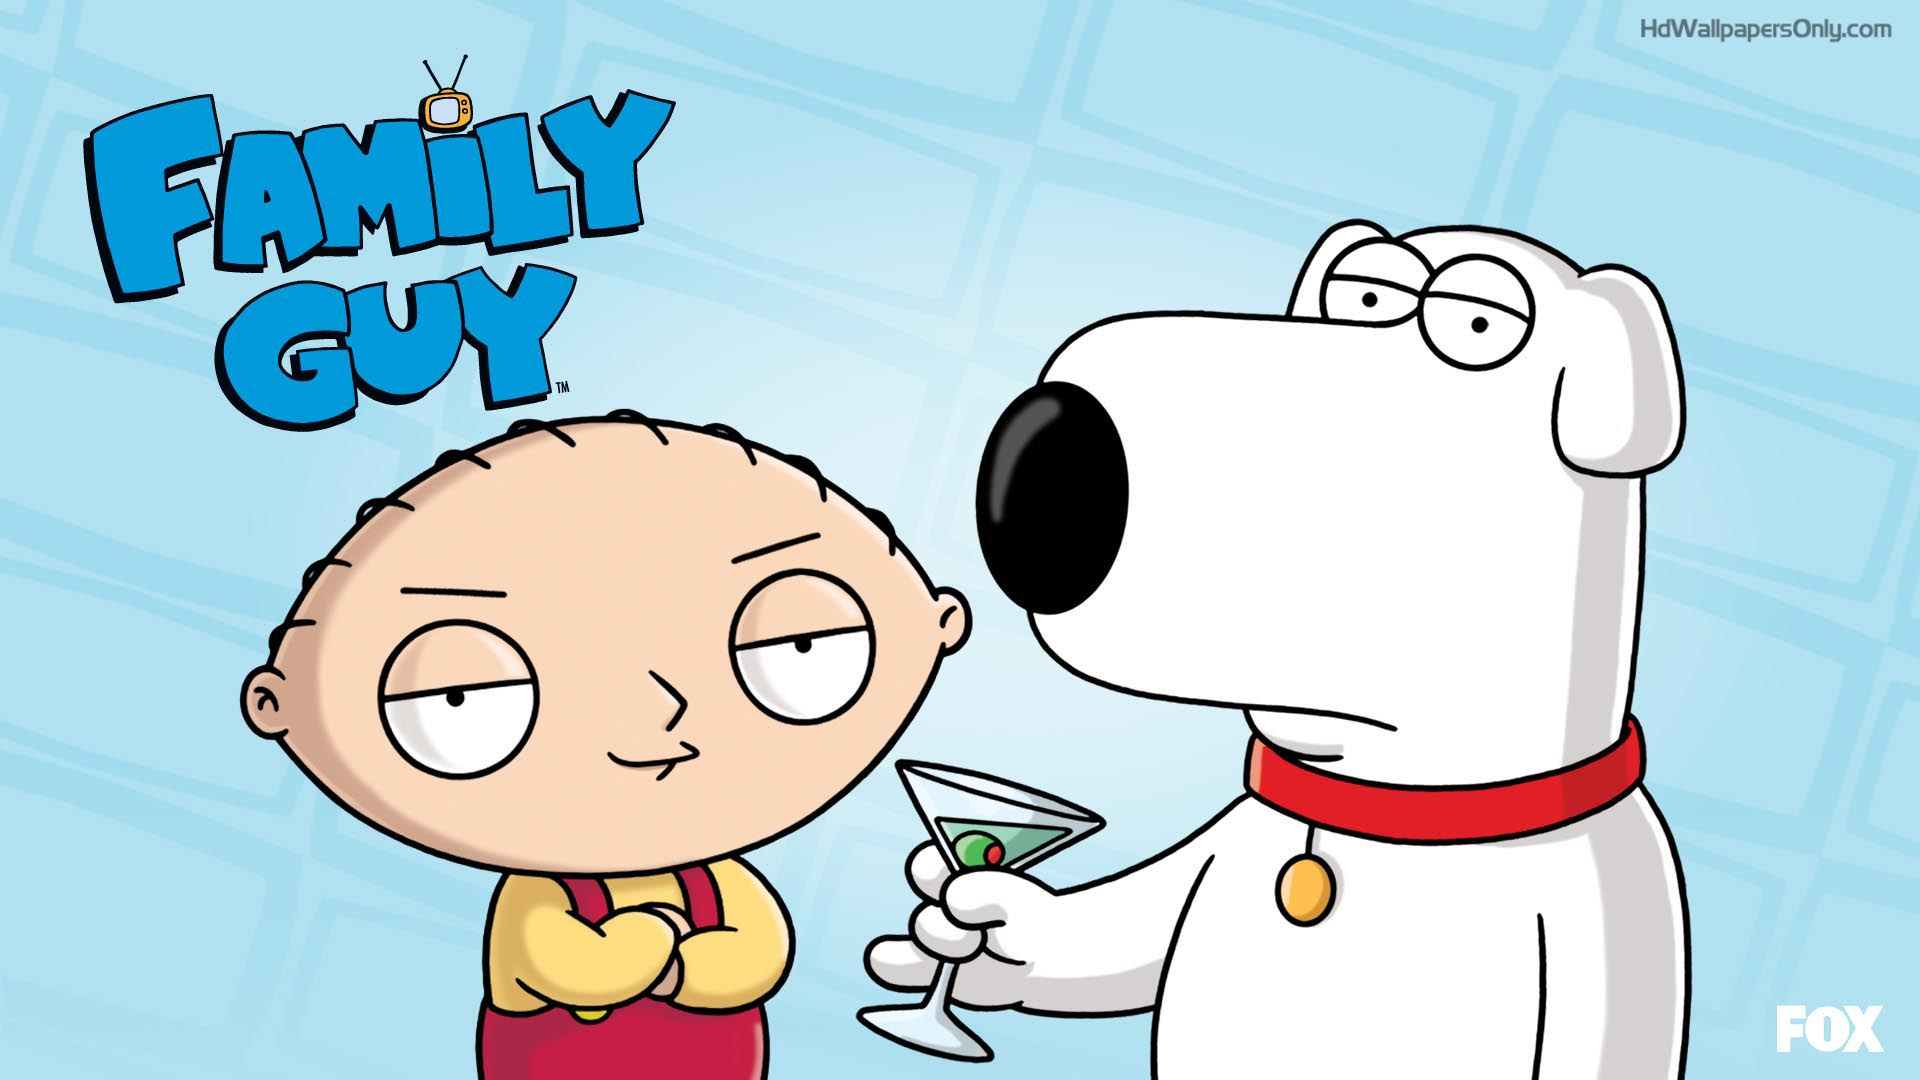 Wallpapers Family Guy